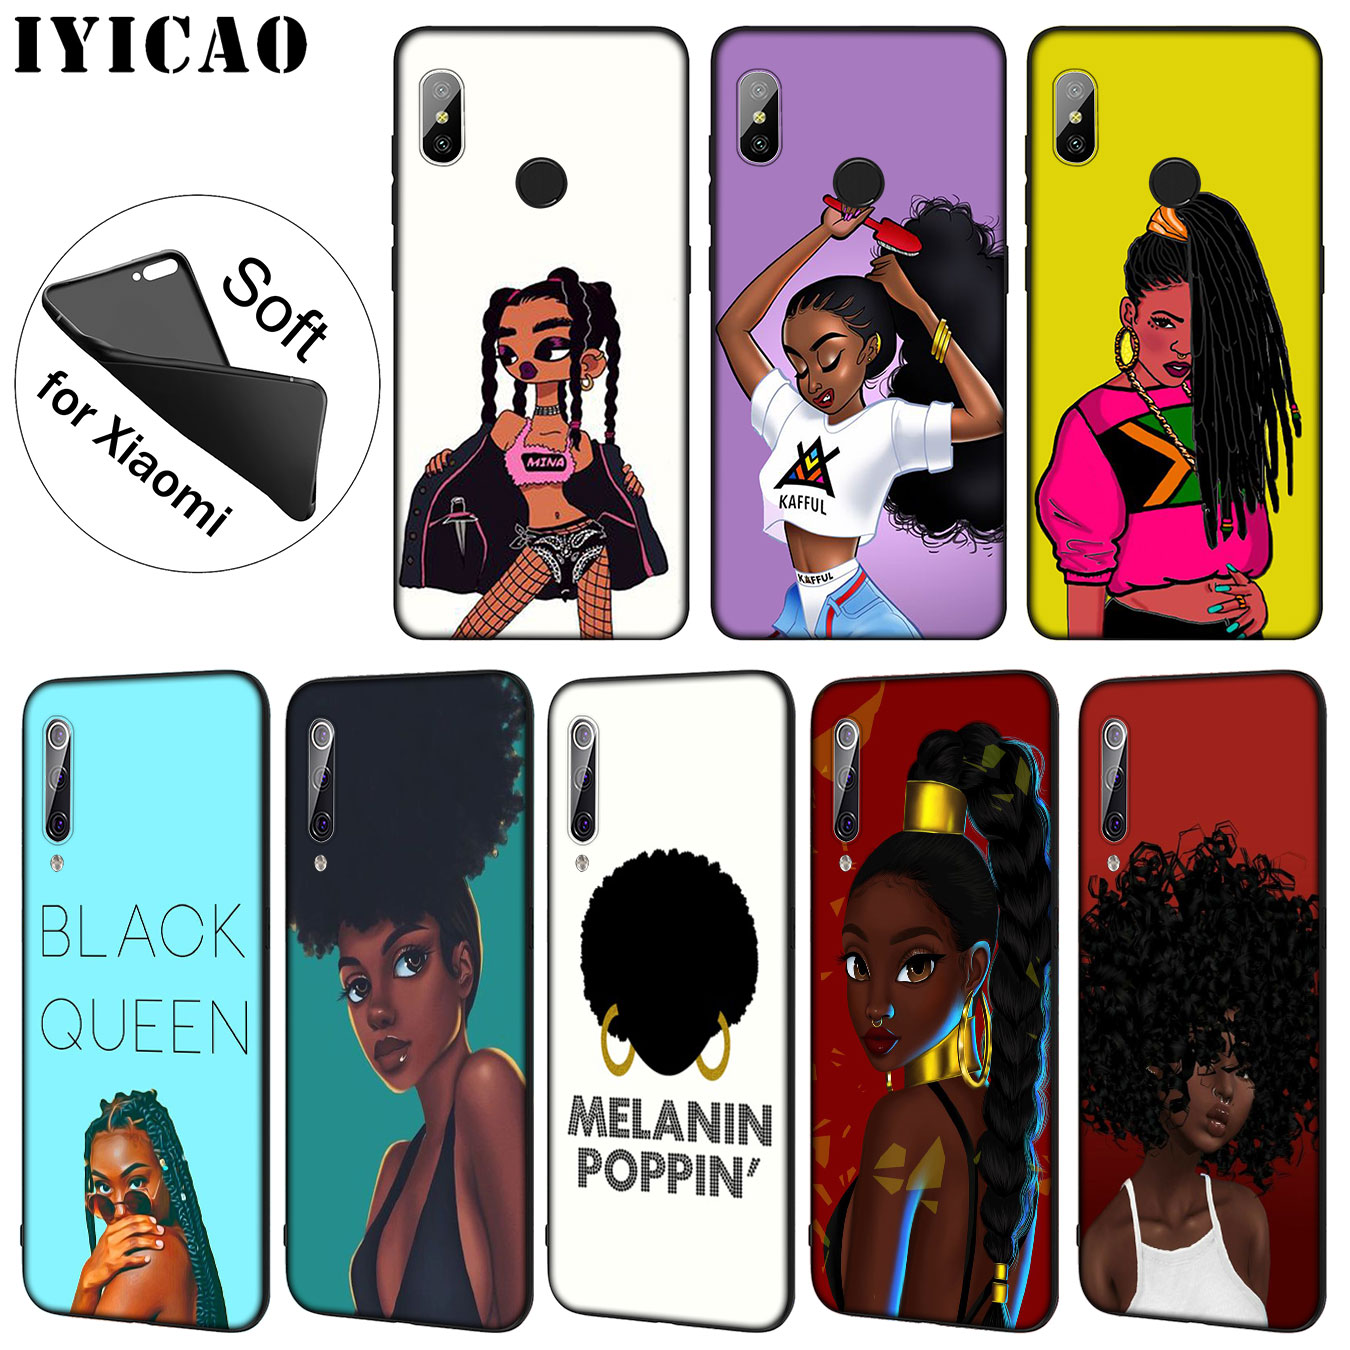 Fitted Cases Lovely Iyicao New Personalized Melanin Poppin Black Girl Soft Case For Xiaomi Mi 9 8 A2 Lite A1 6 6x Pocophone F1 Max 3 Mi9 Mi8 Mia2 Can Be Repeatedly Remolded.